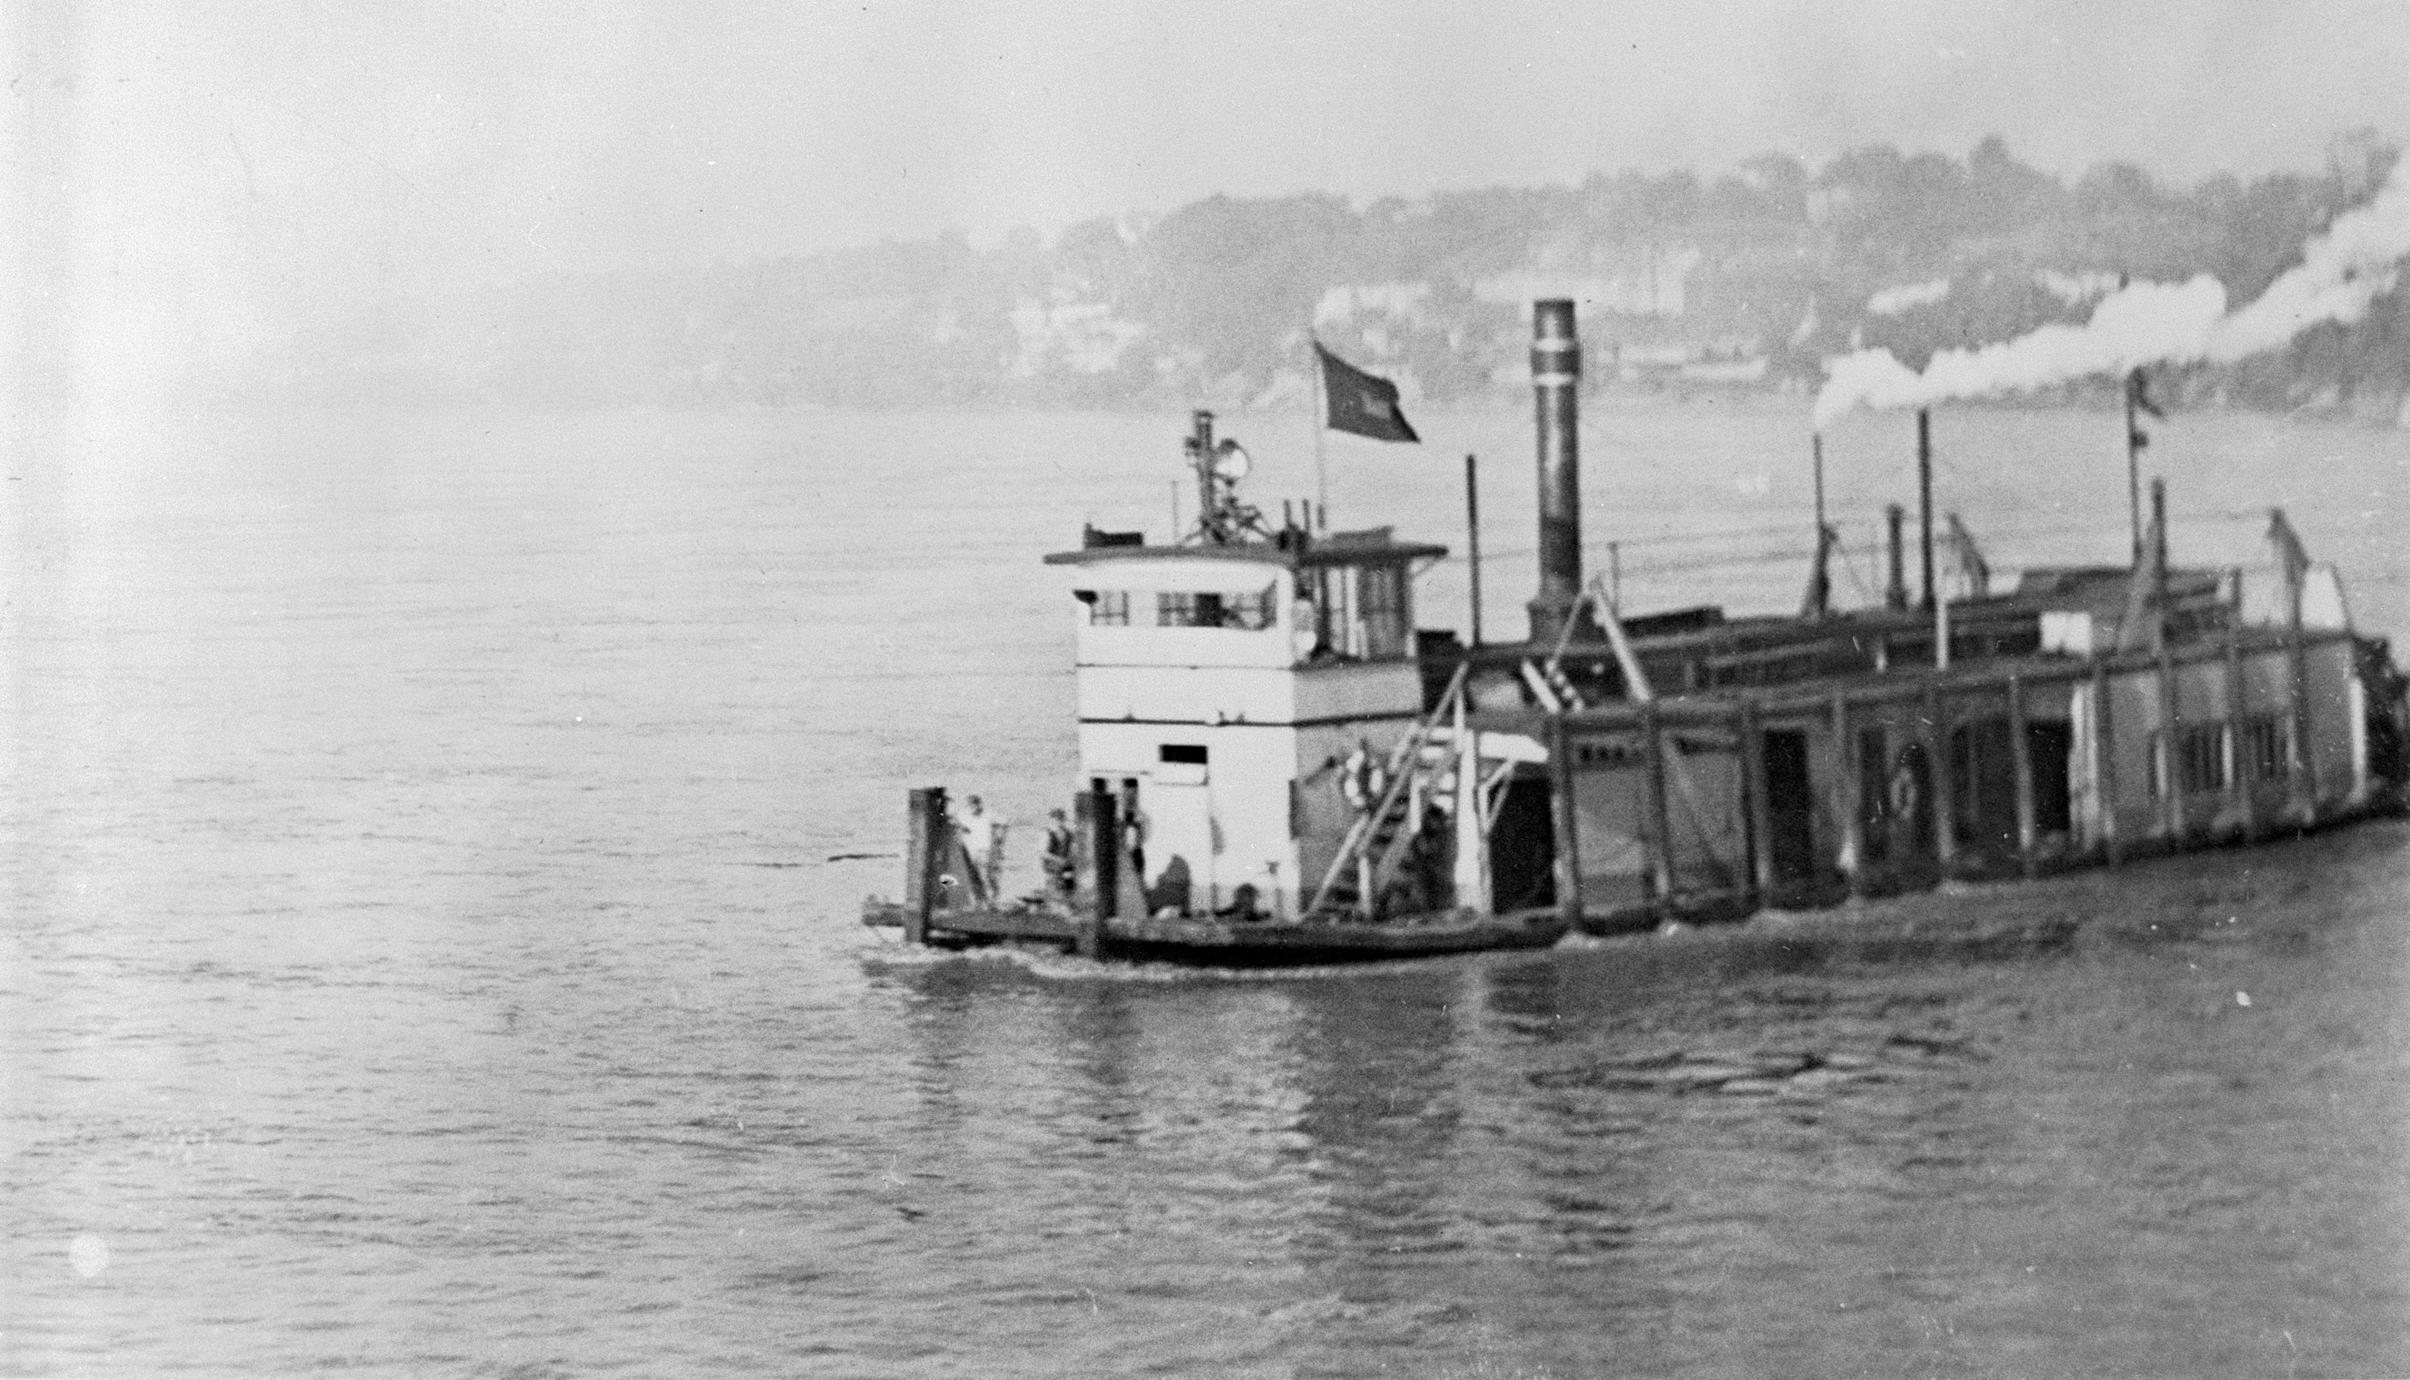 Salvisi (Towboat, 1912-1944)